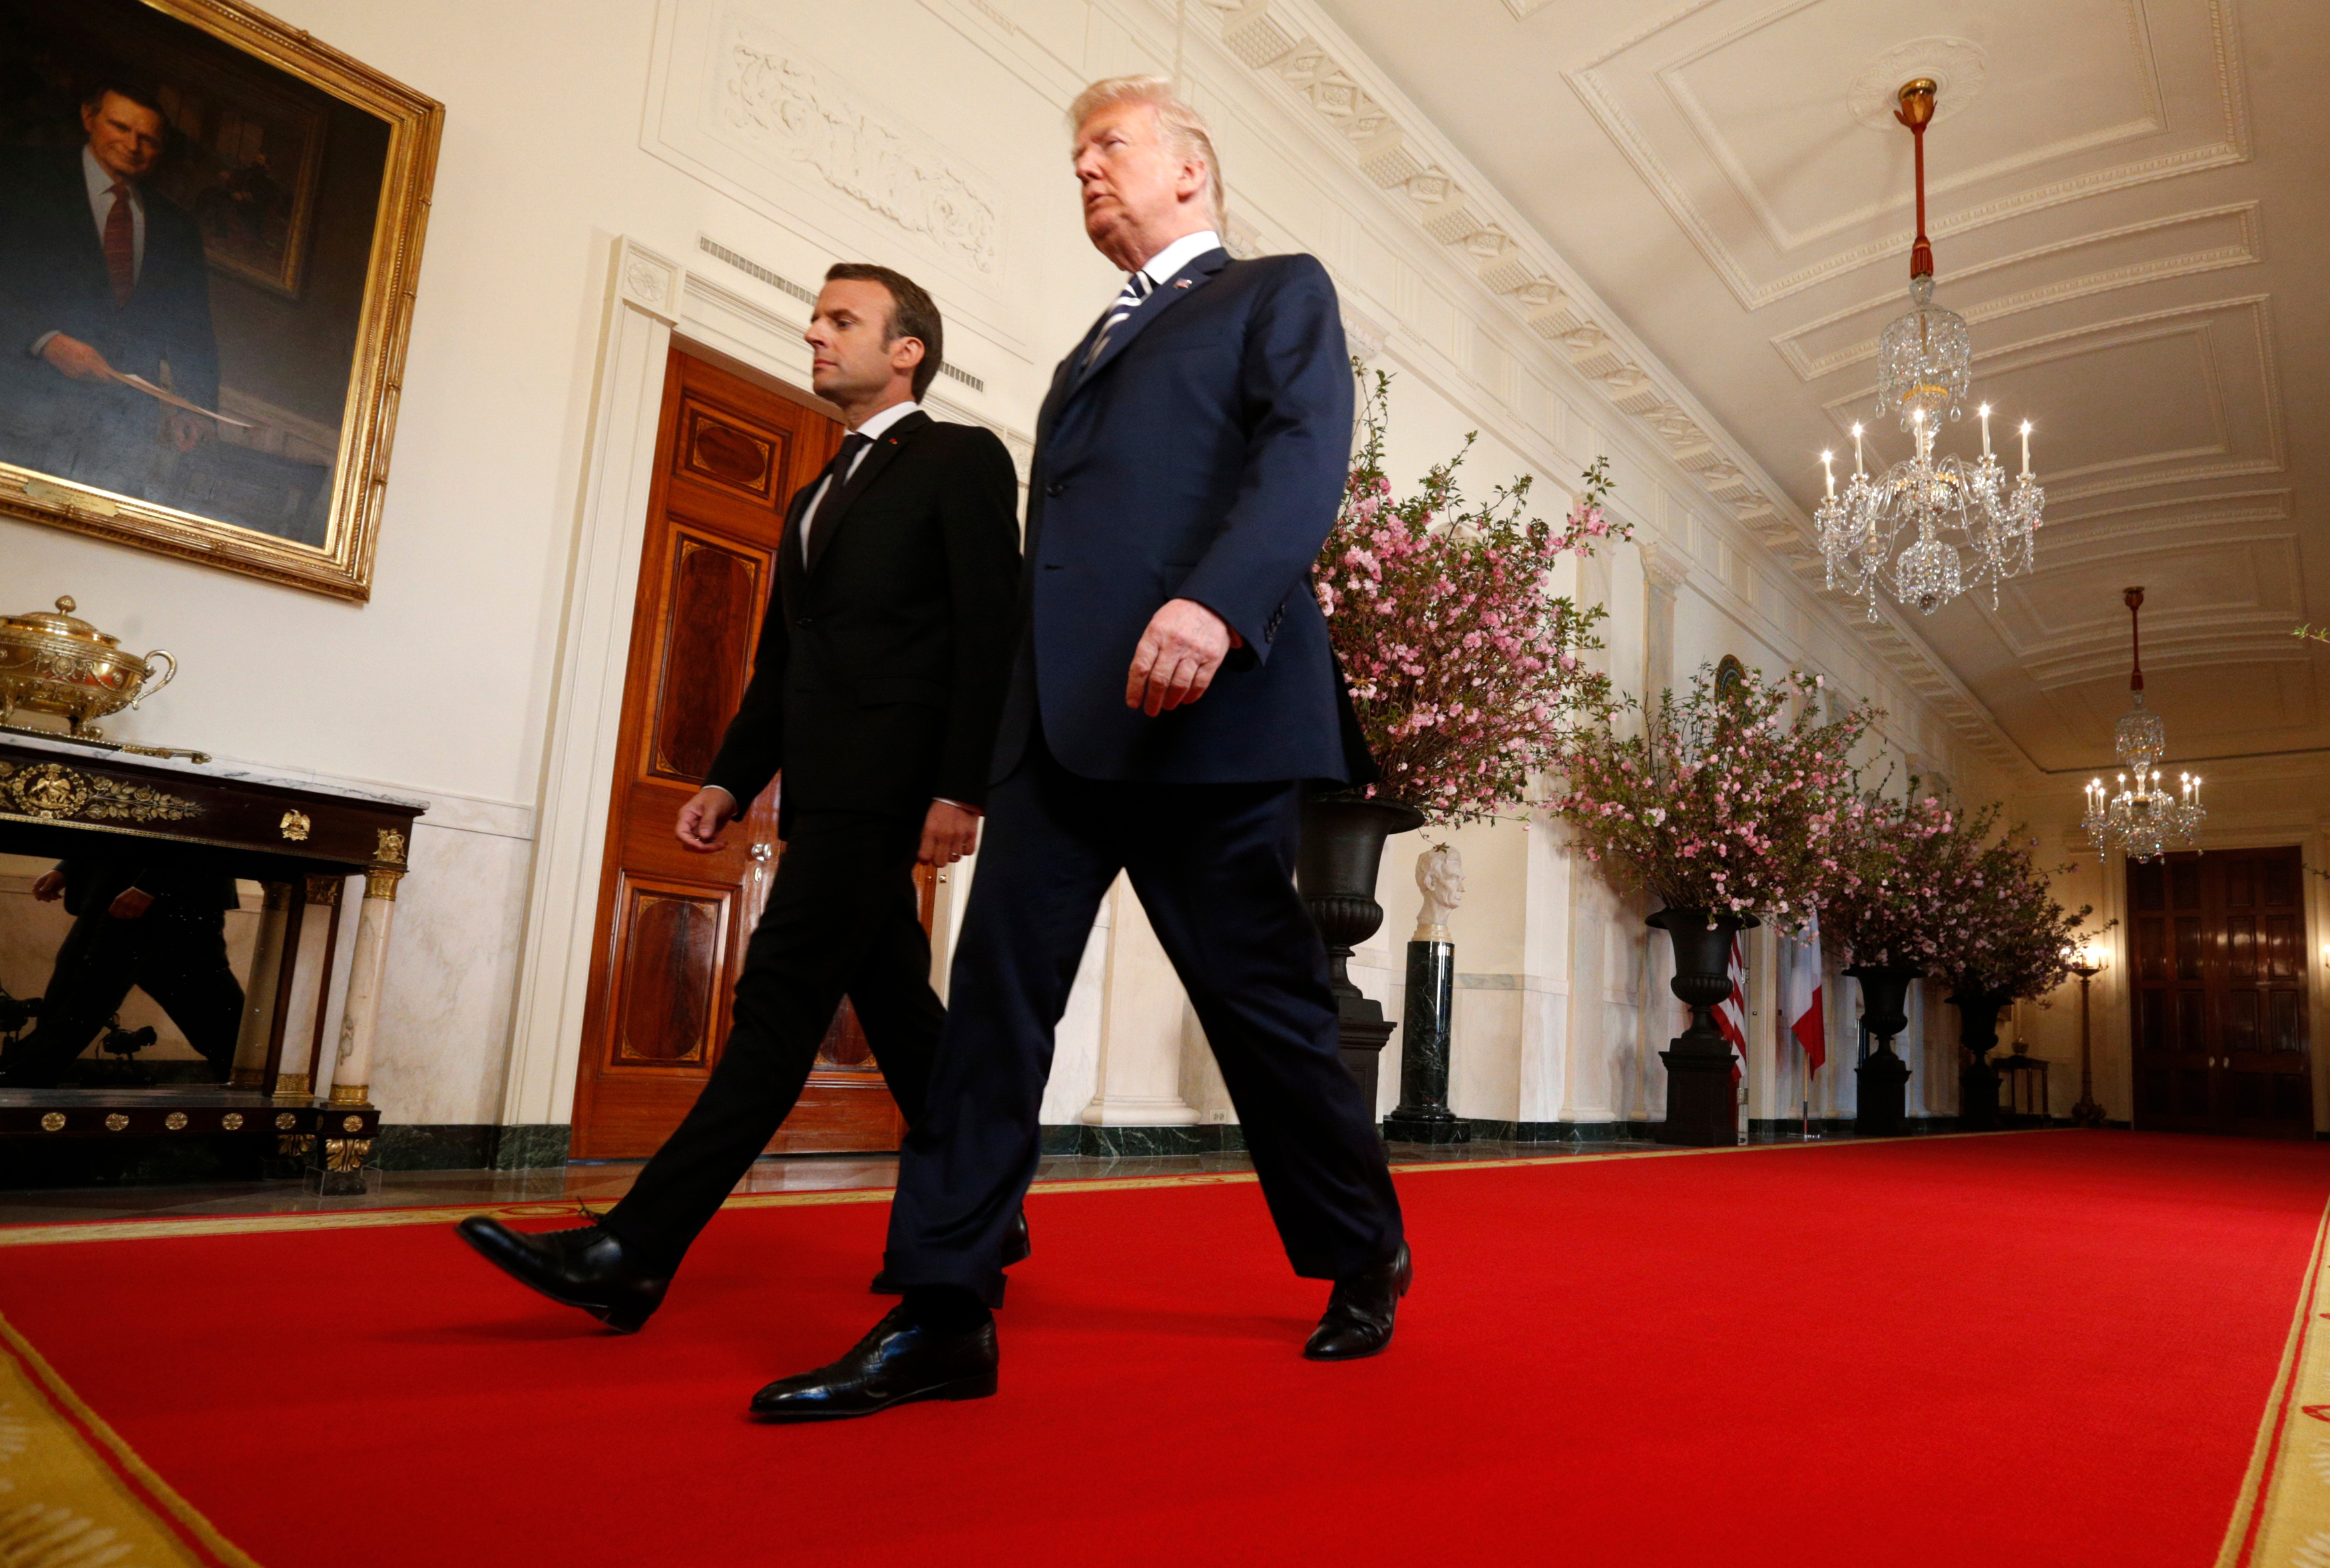 U.S. President Donald Trump (R) and French President Emmanuel Macron walk through the cross hall of the White House as they arrive for their joint news conference in Washington, U.S., April 24, 2018. REUTERS/Kevin Lamarque - HP1EE4O1EPJAX